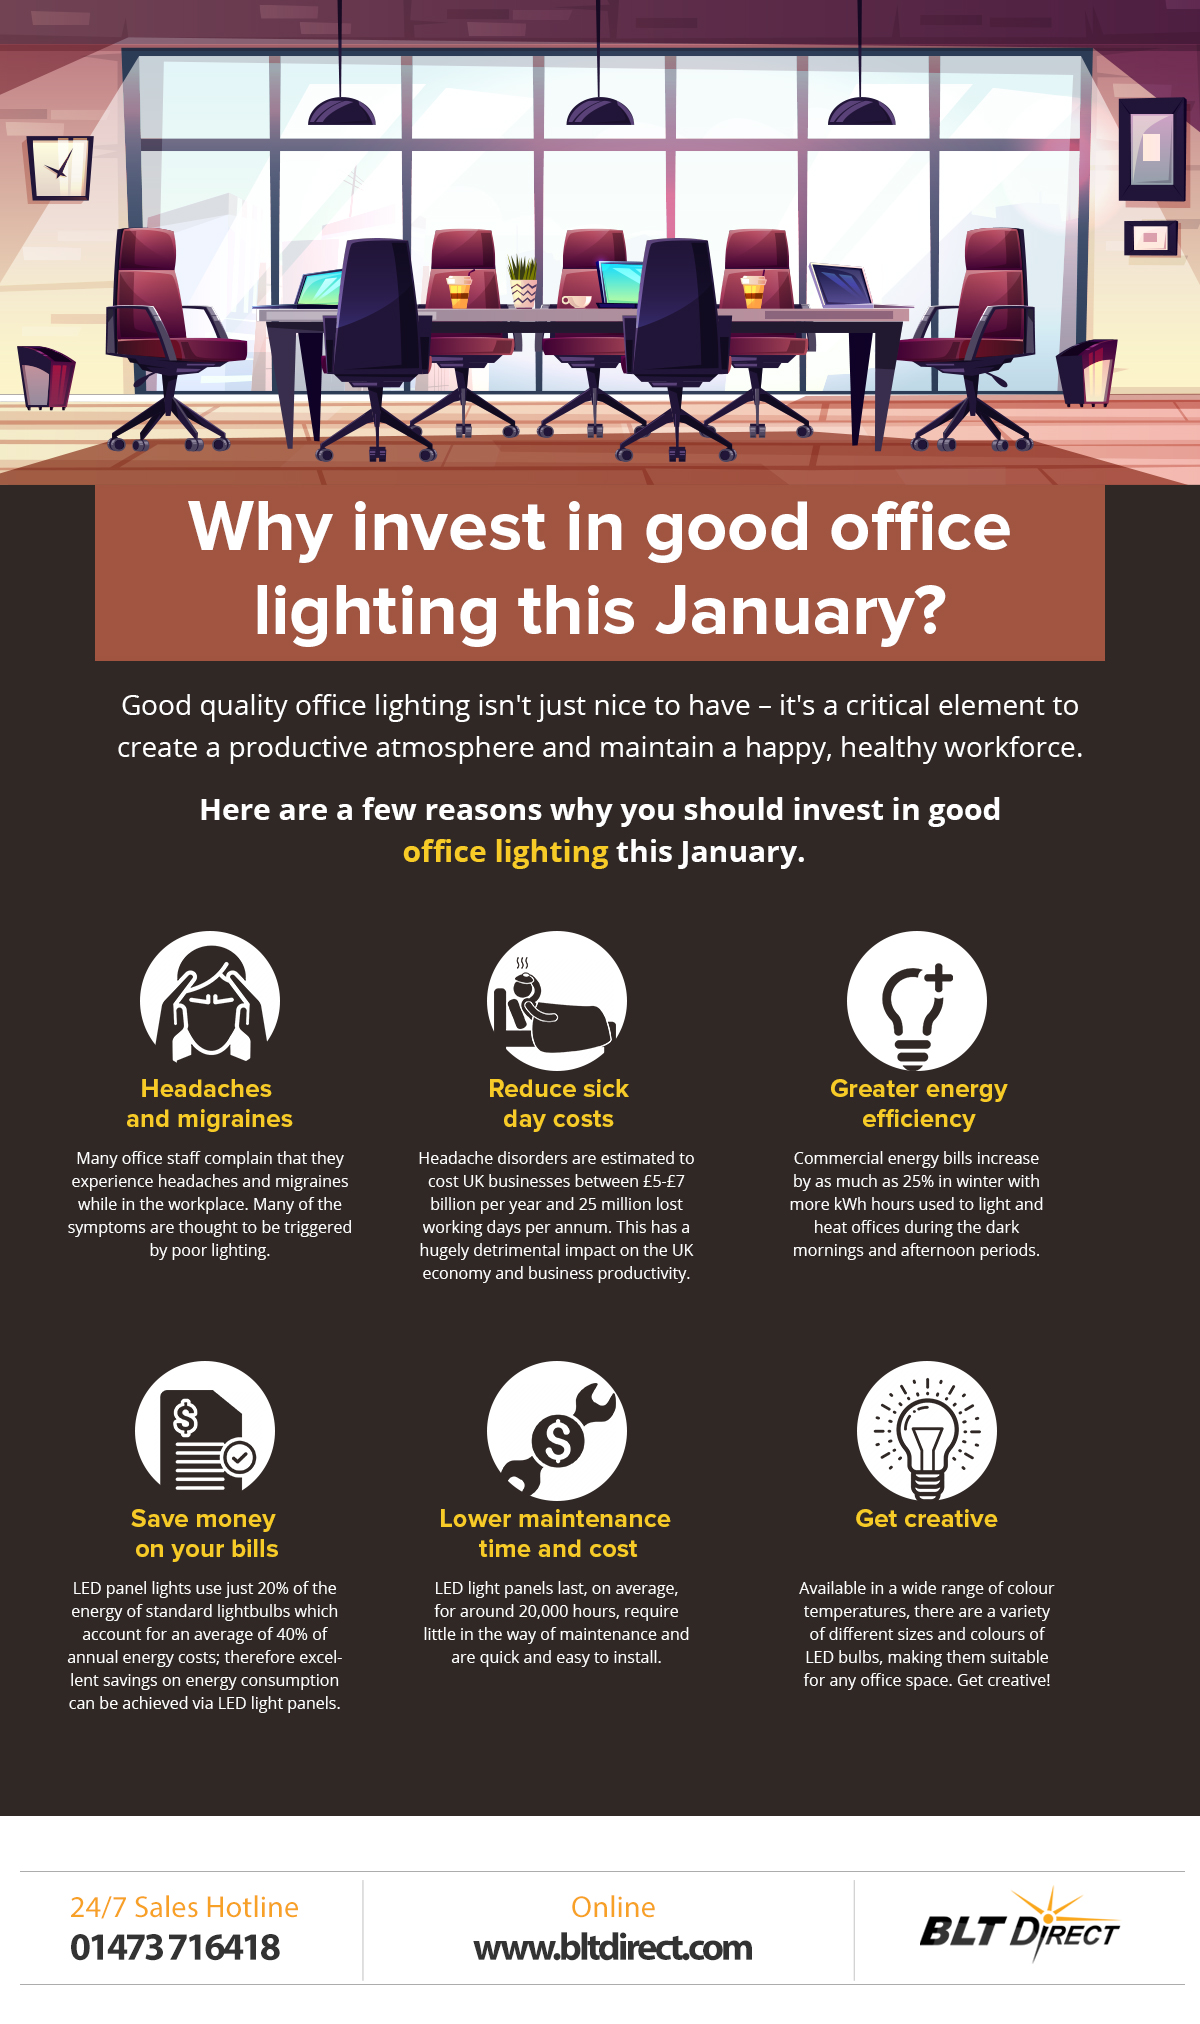 Why_invest_in_good_office_lighting_this_January_infographic_ver01-1